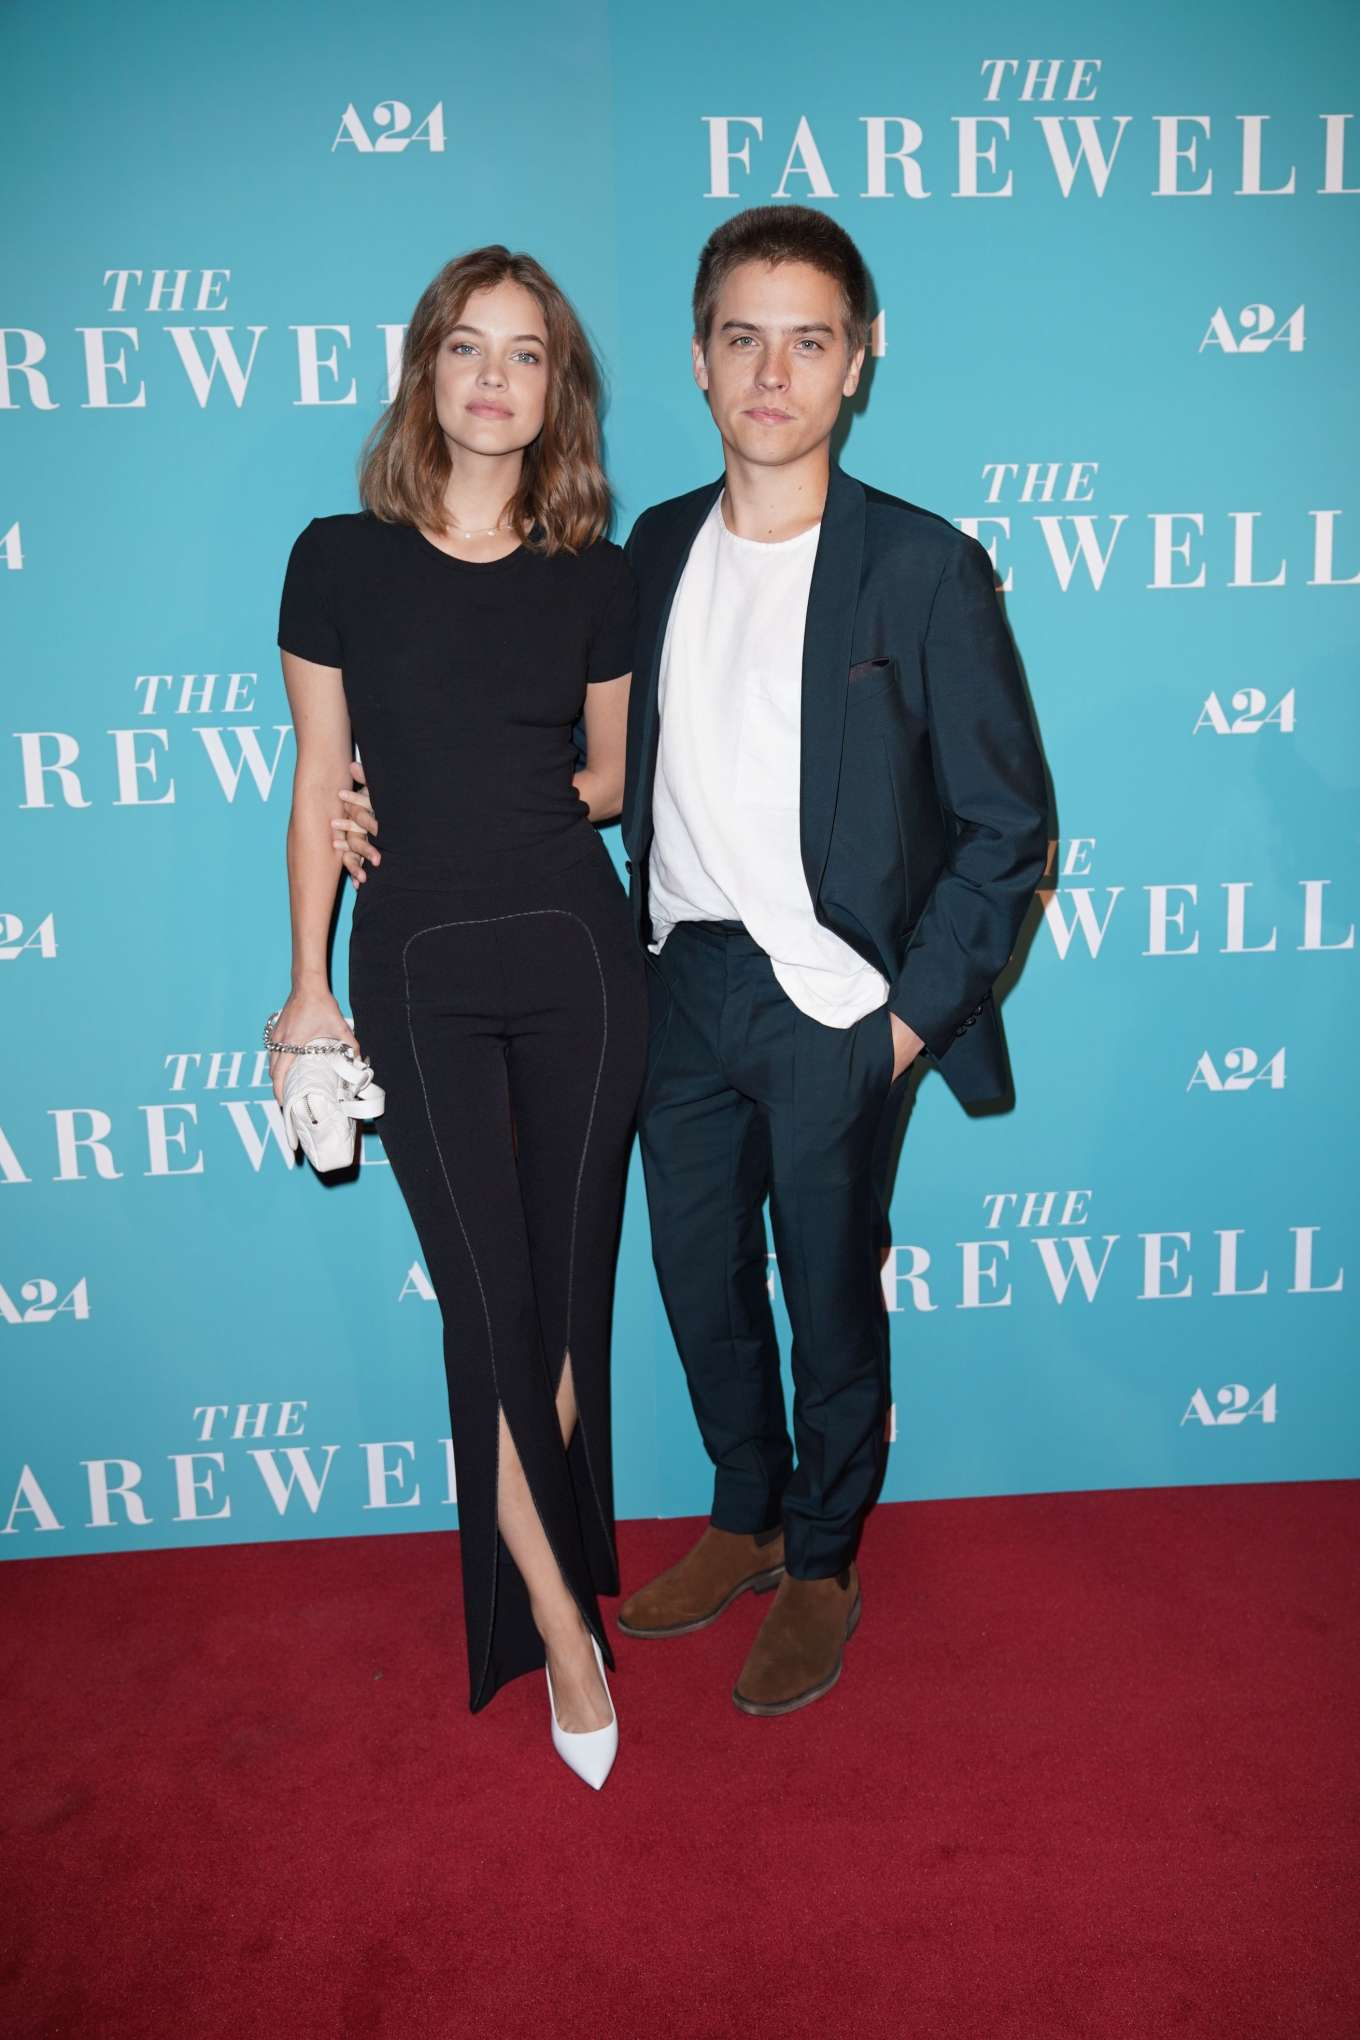 Barbara Palvin 2019 : Barbara Palvin and Dylan Sprouse – The Farewell Special Screening-07